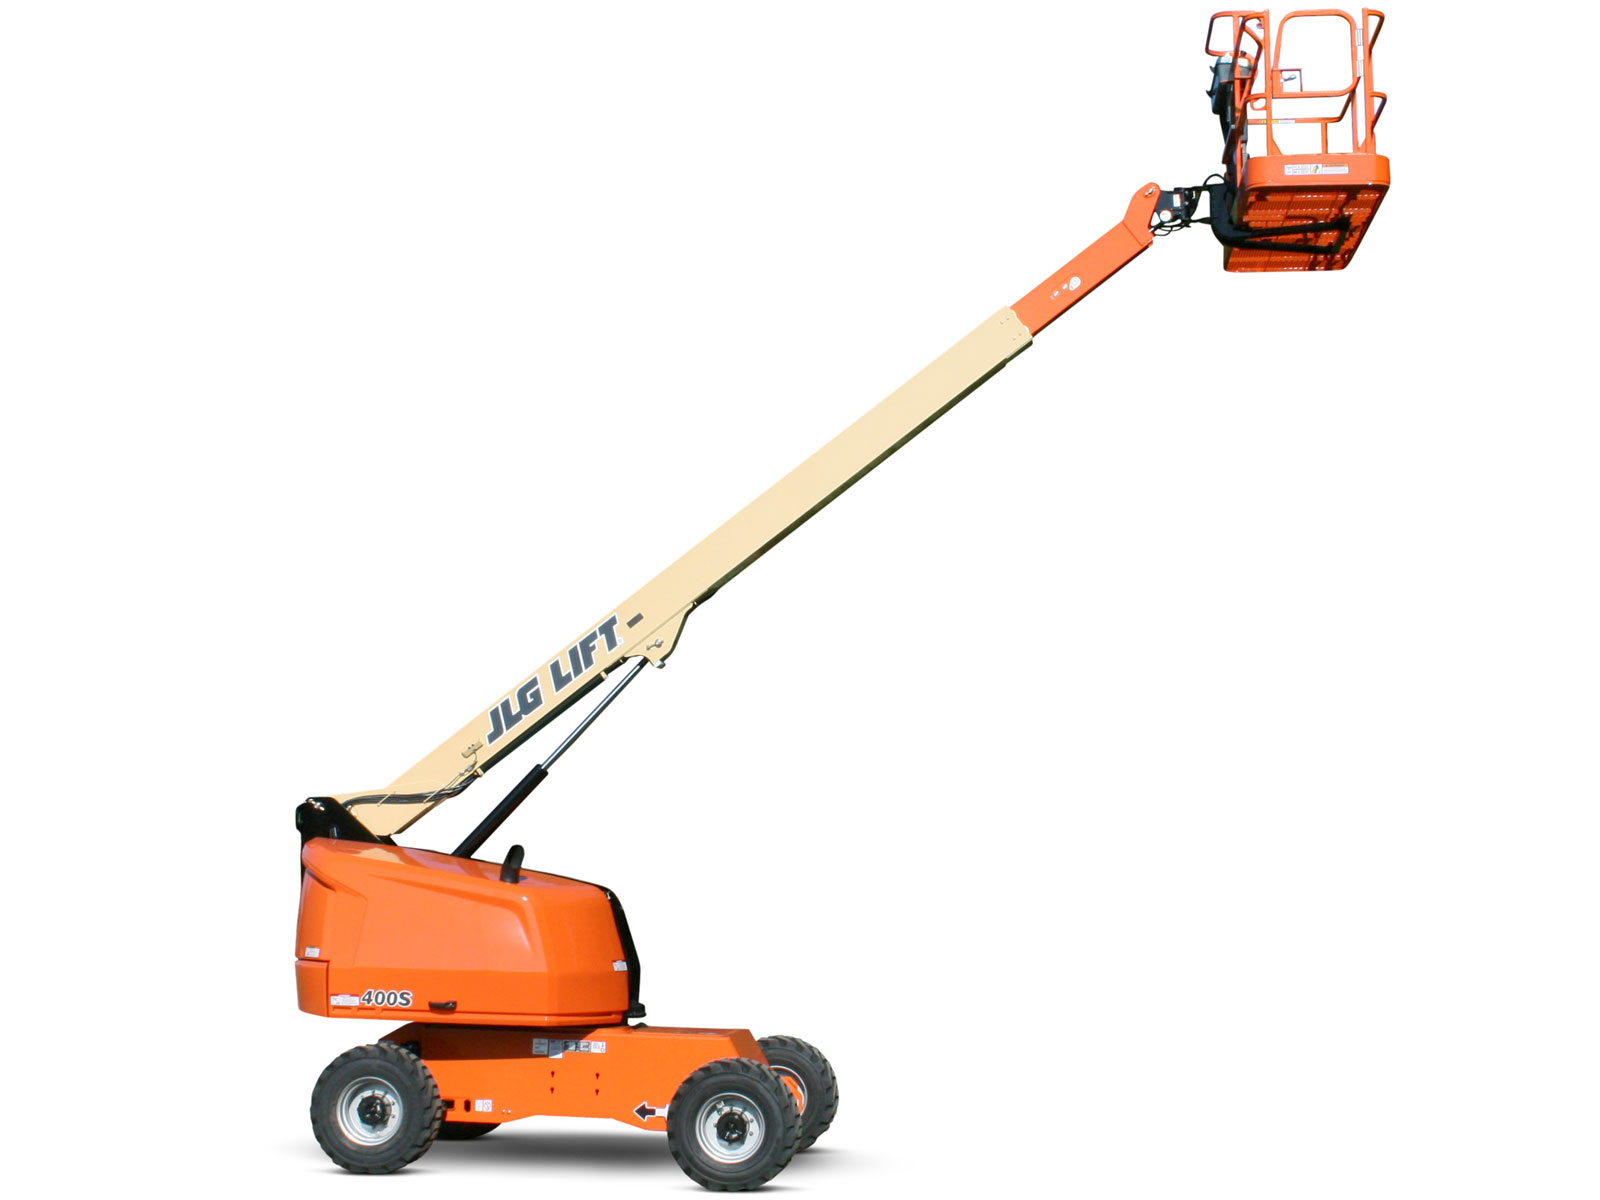 400s gallery silo?w=100 400s telescopic boom lift jlg jlg 40h wiring diagram at creativeand.co